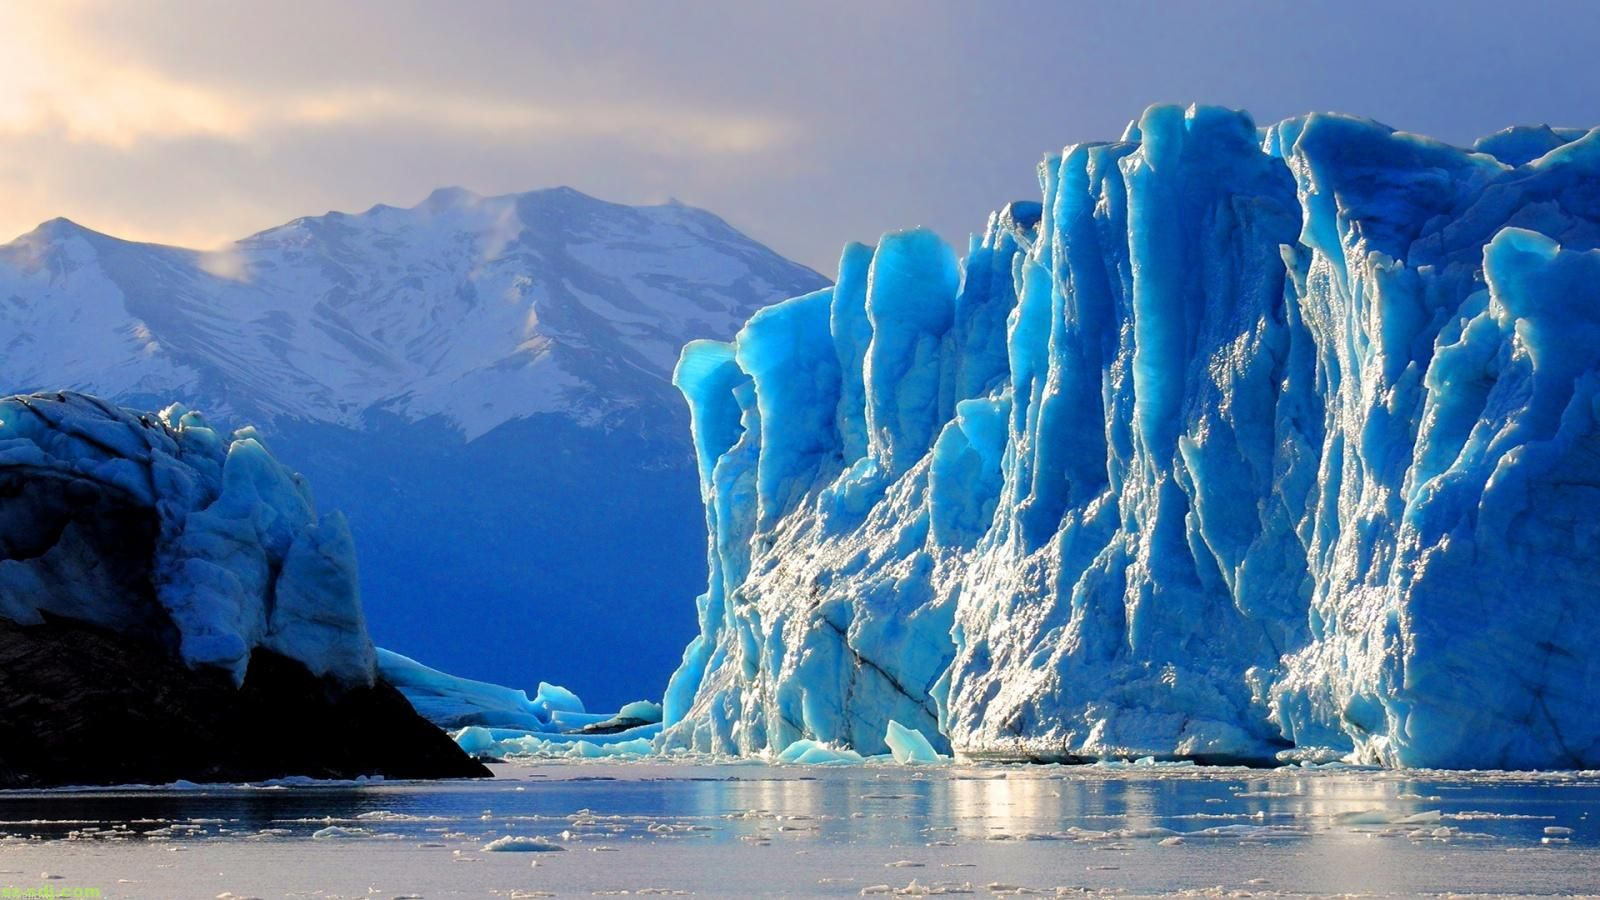 Ice Glaciers File Name Blue Ice Glacier Wallpaper 1600x900